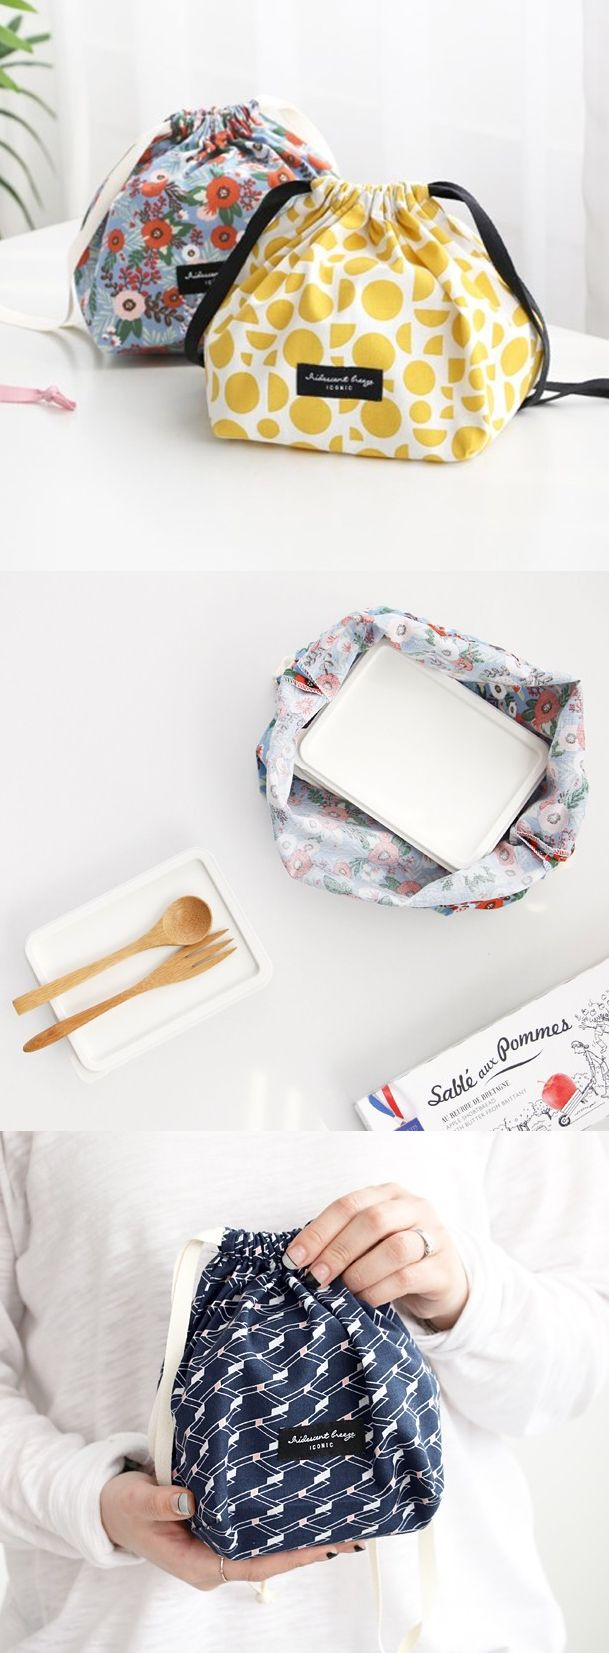 The squared bottom provides more capacity! Store your items in this cute and functional pouch!